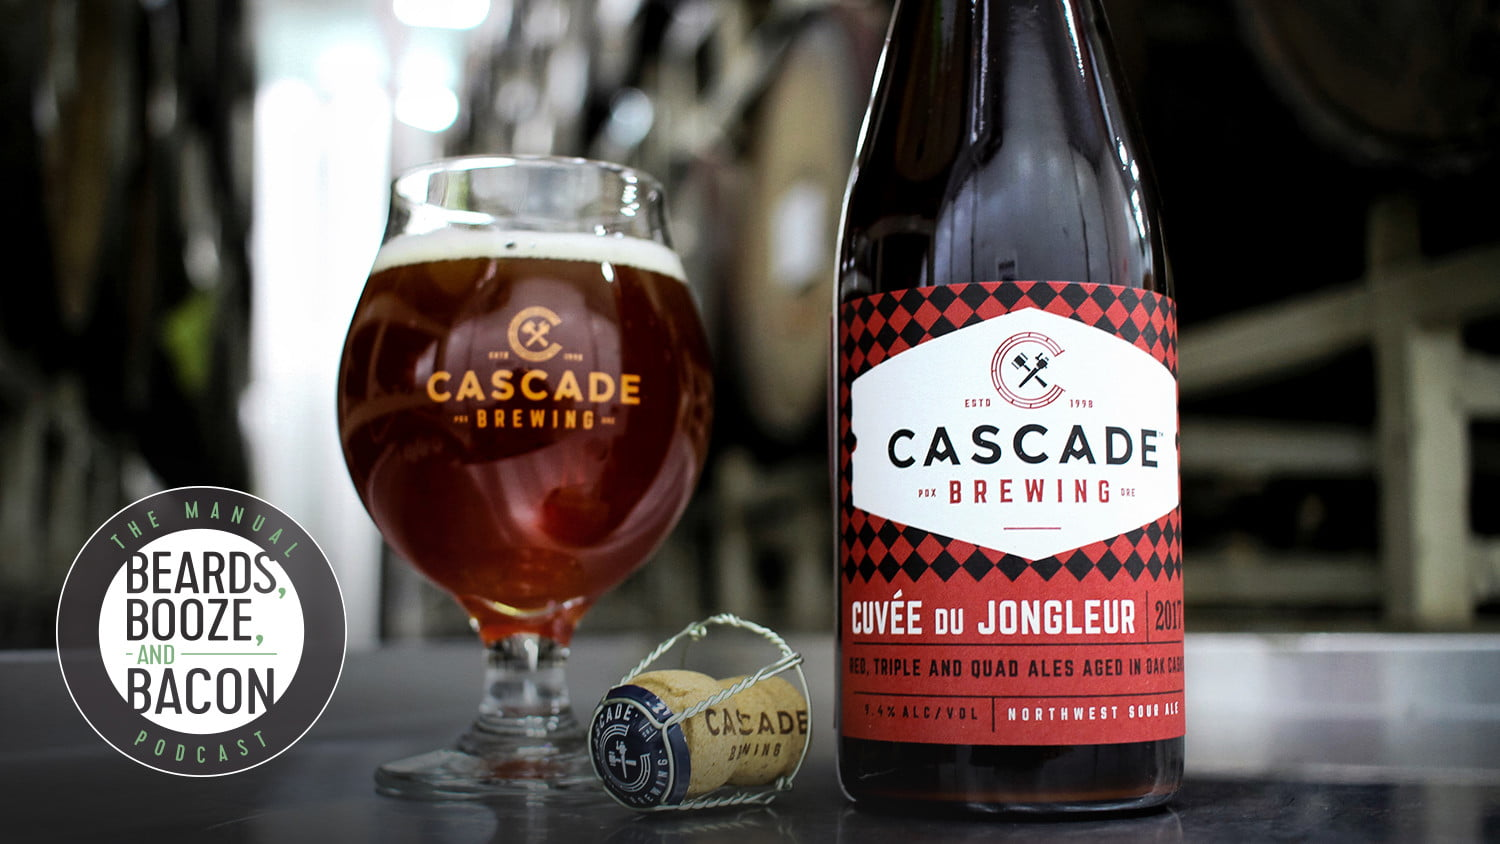 beards booze bacon sour beer cascade brewing the manual podcast beers episode